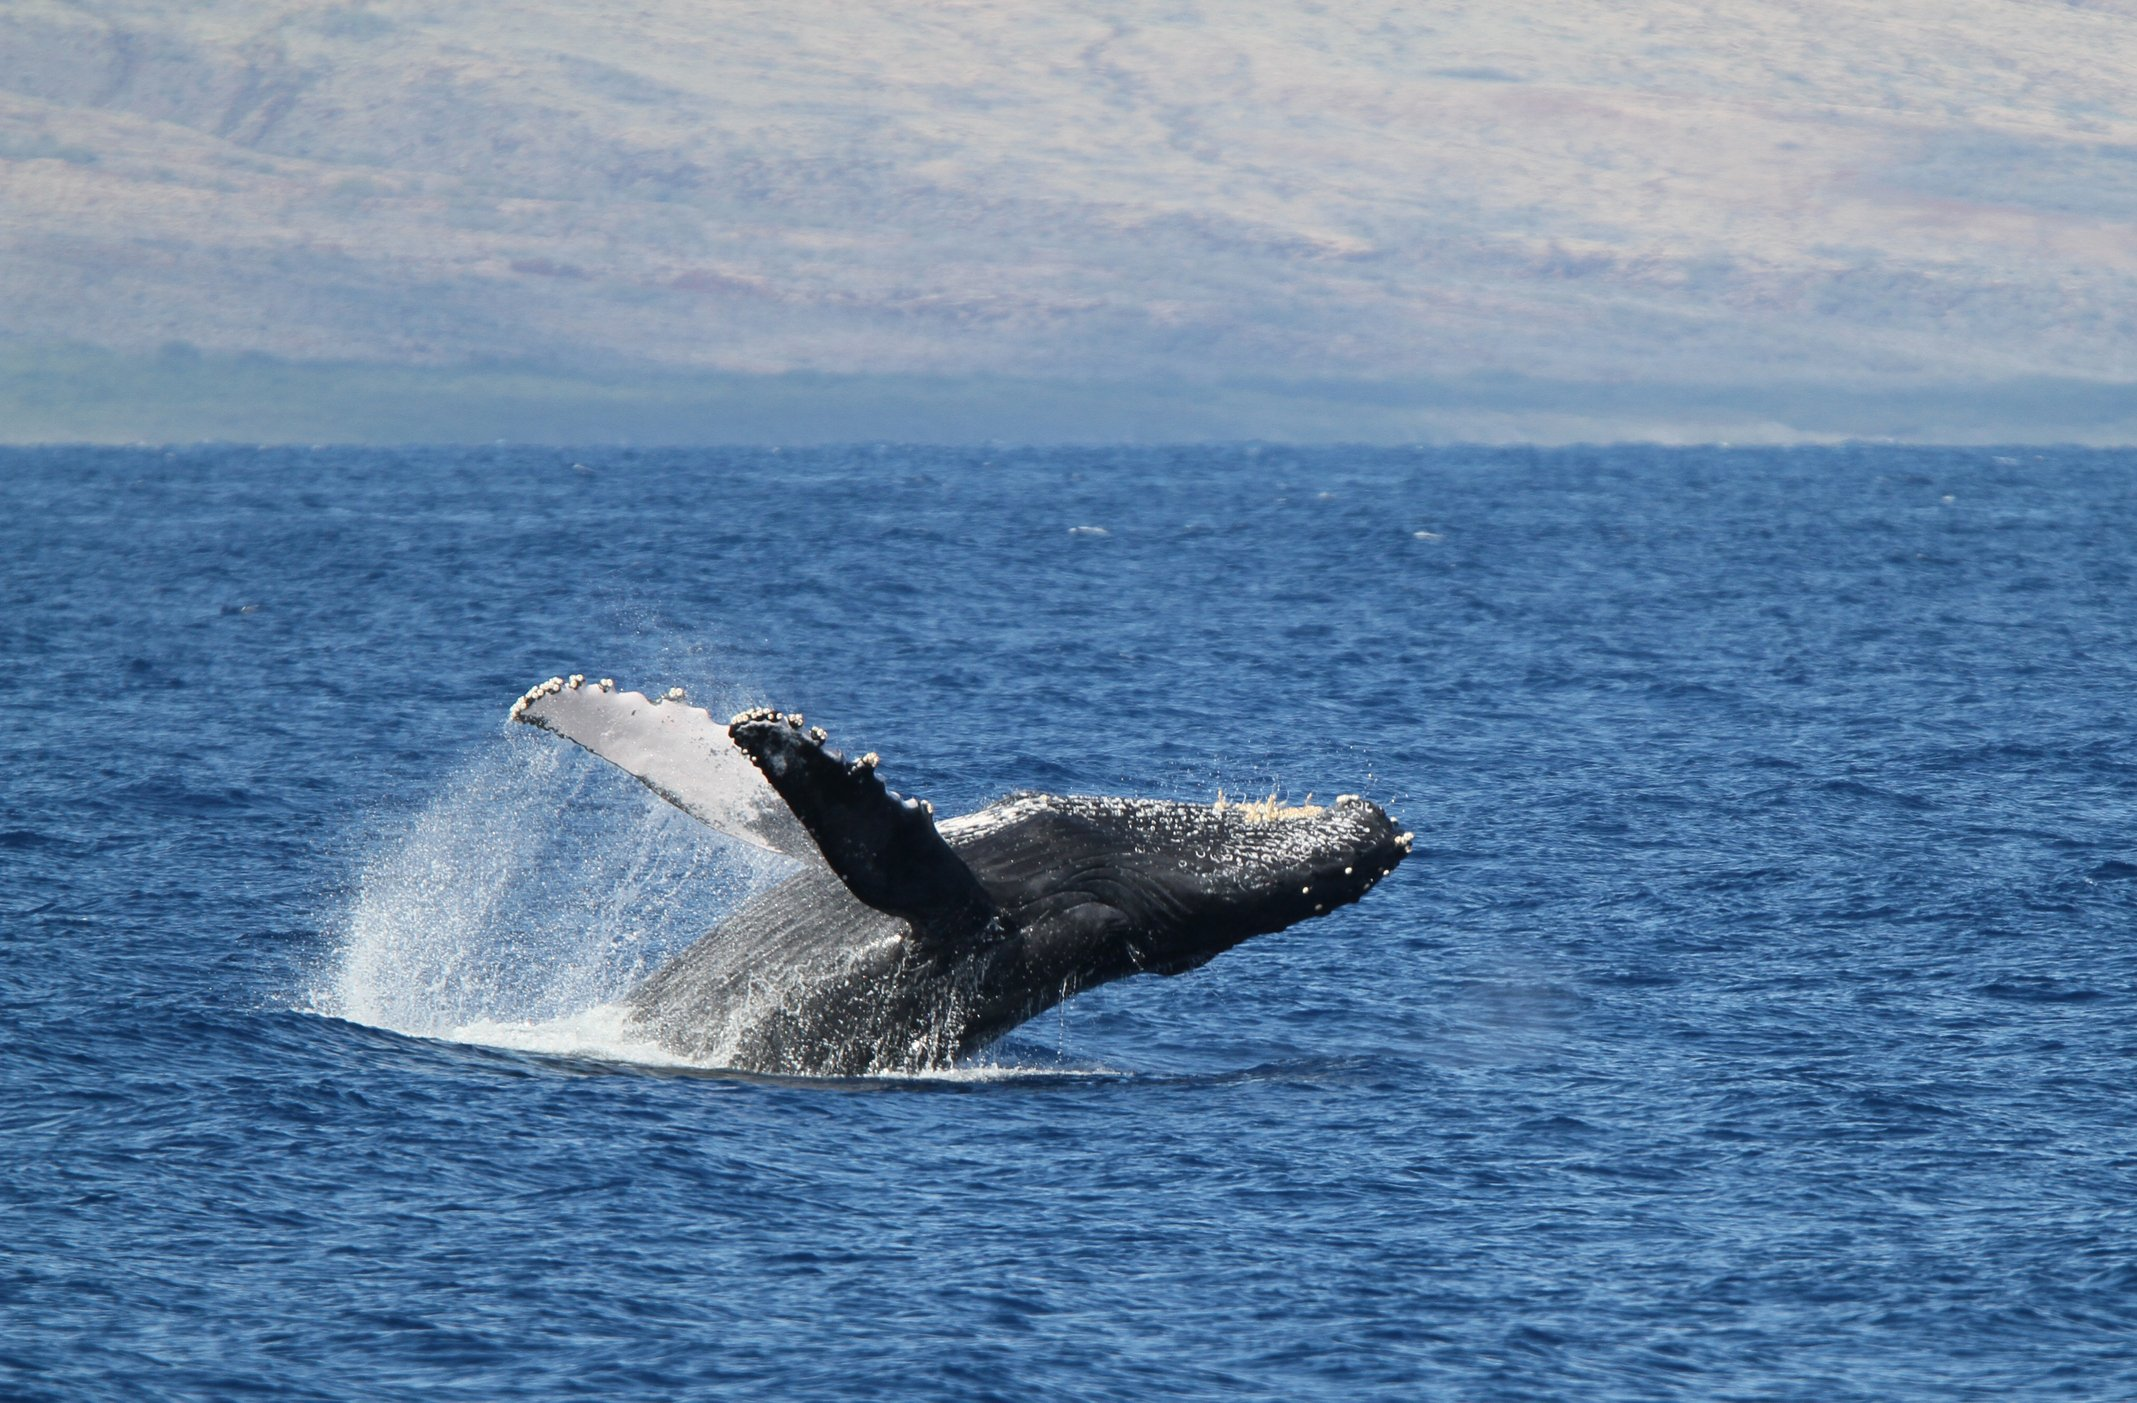 A humpback whale breaches out of the ocean in Maui.